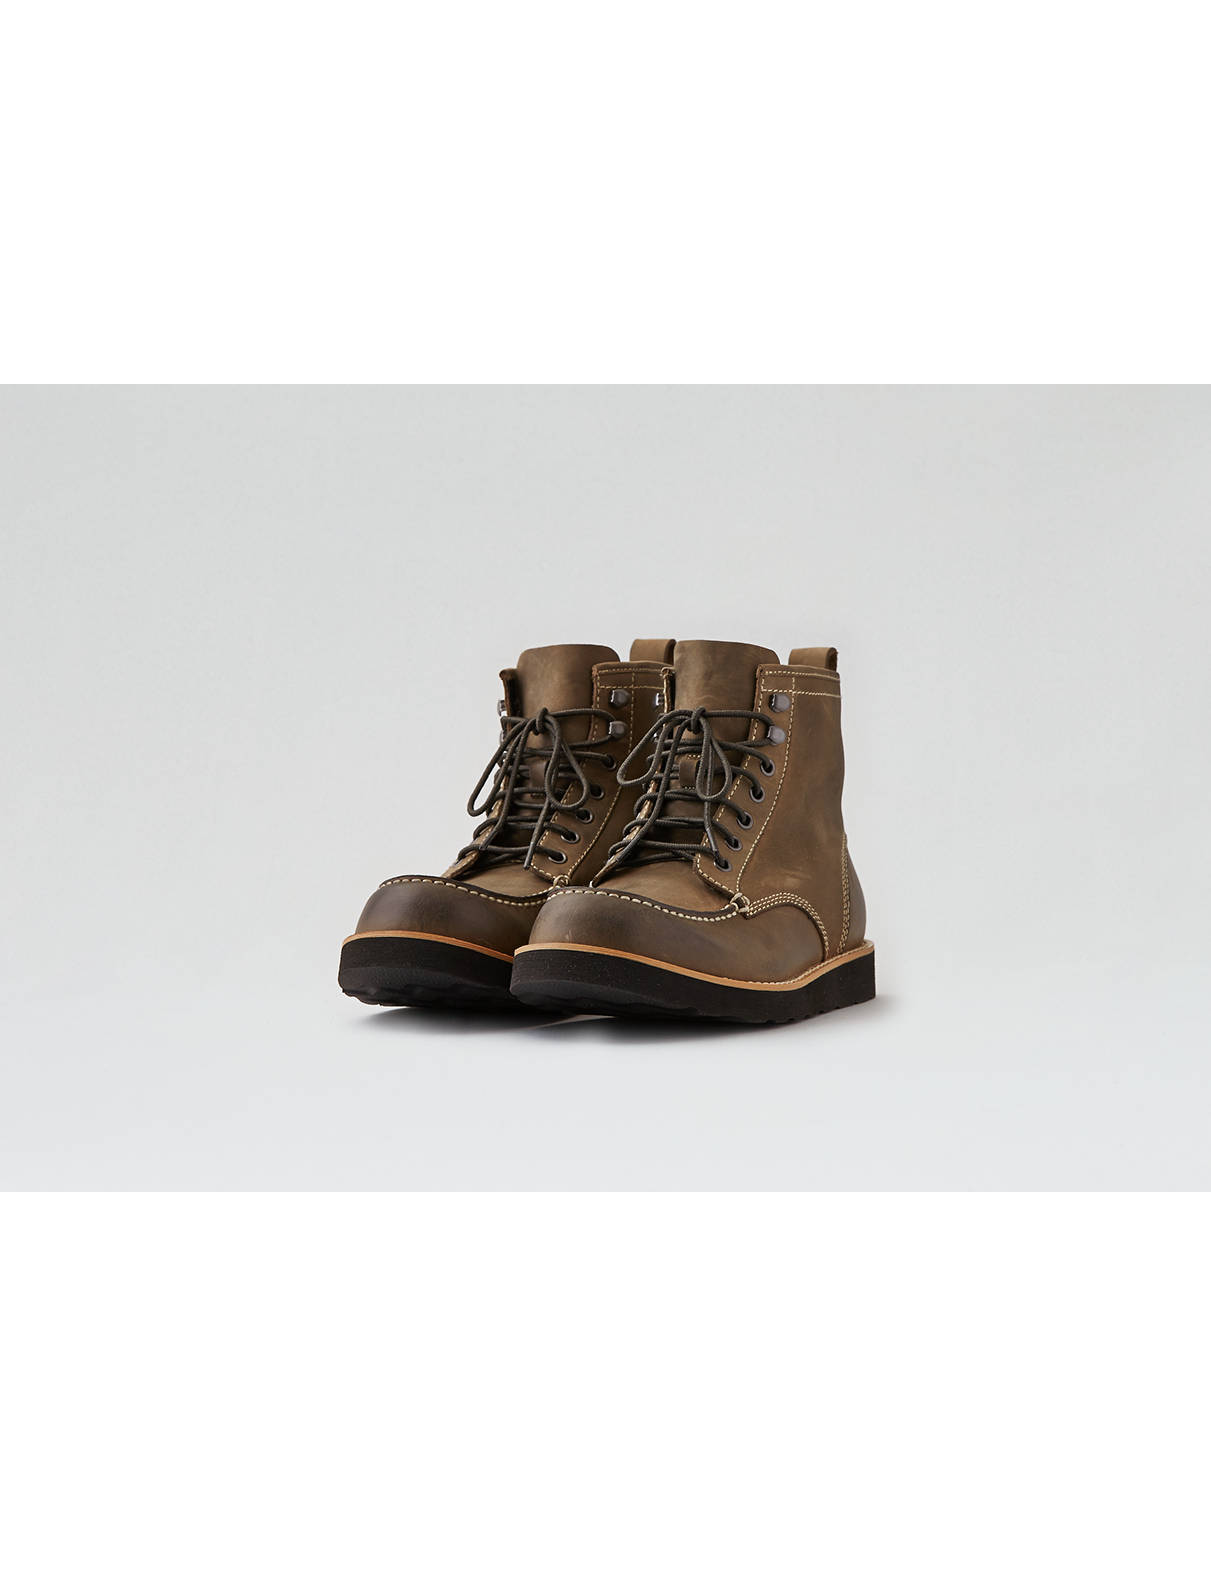 Mens Leather Boot | American Eagle Outfitters